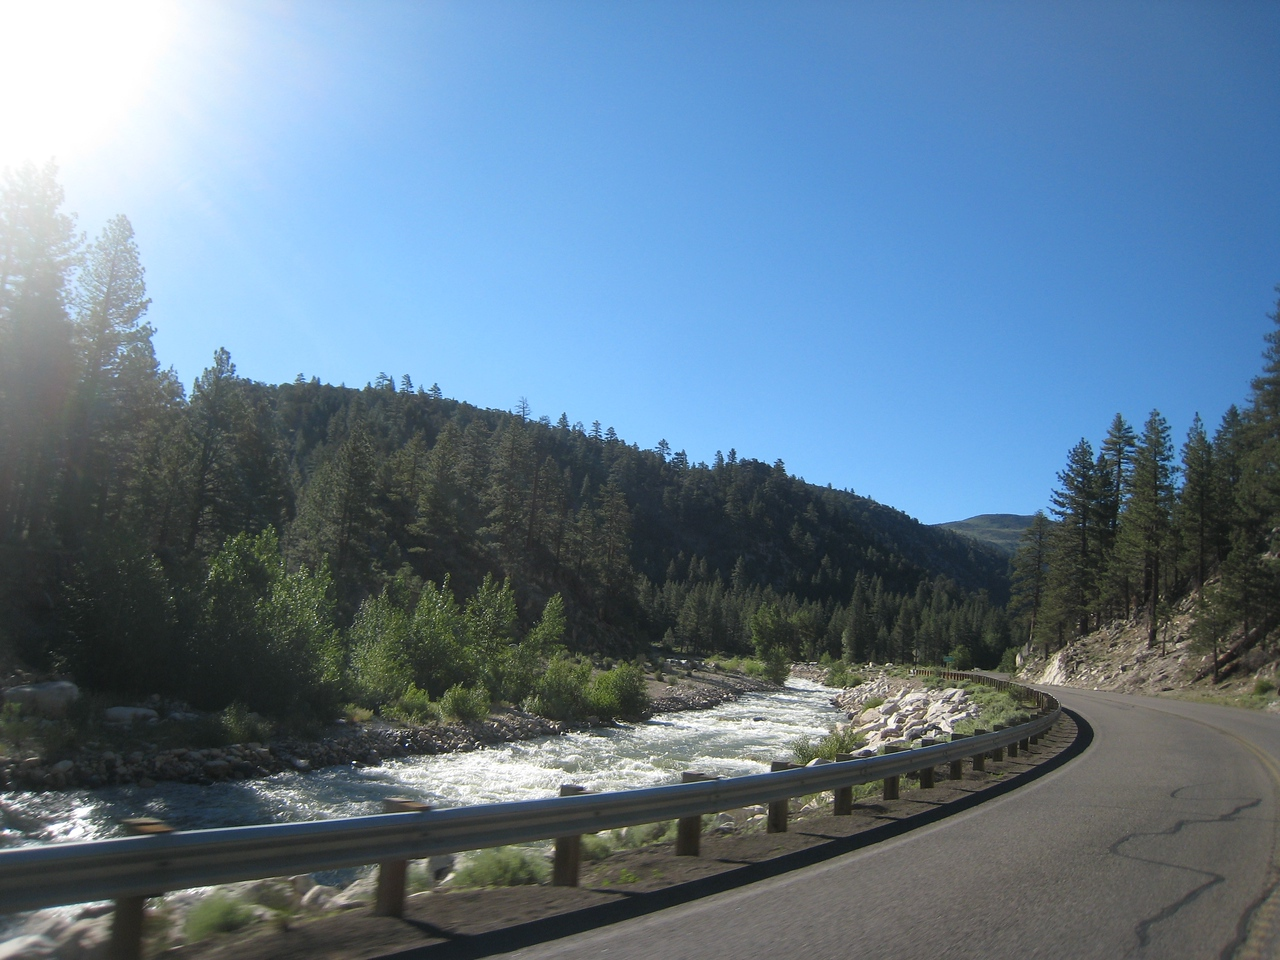 First leg of the trip takes me south on Highway 395 through Walker Canyon.  The river is full of spring run-off.